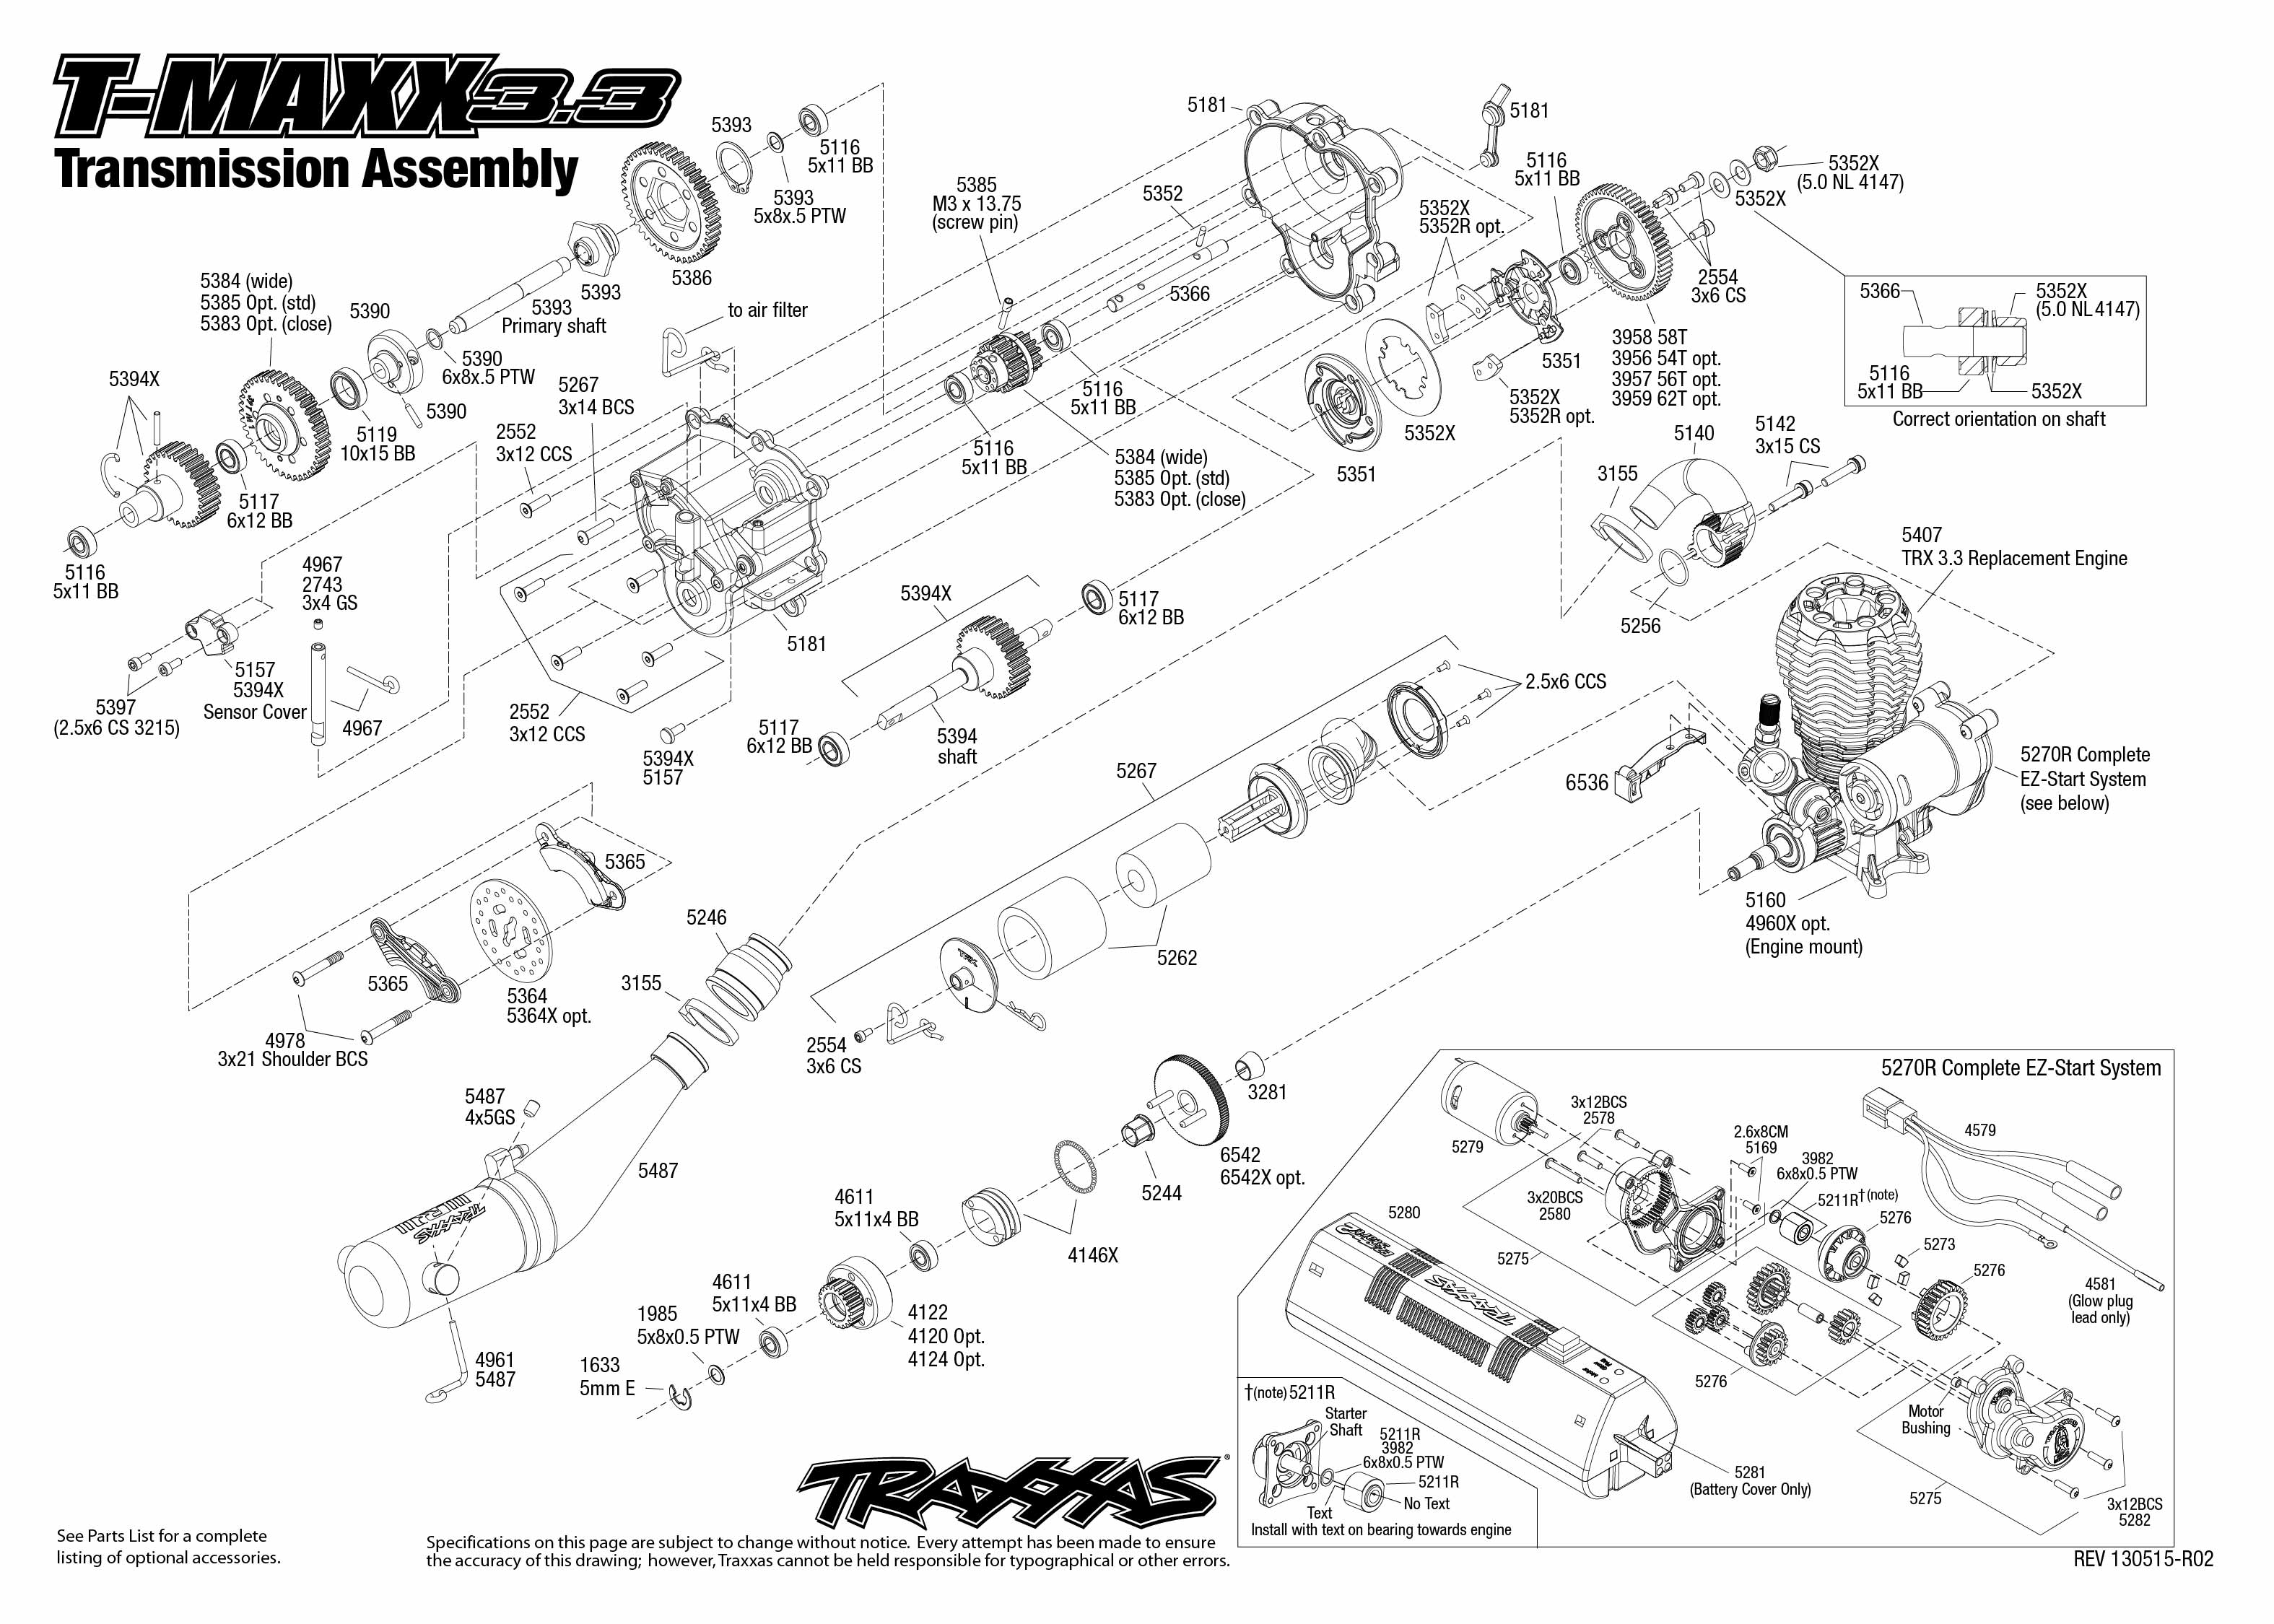 4907_Tmaxx33_TQi_explodedviews 130515_4907 Transmission Assembly 4907 transmission exploded view (t maxx 3 3) traxxas traxxas revo 3.3 wiring diagram at eliteediting.co